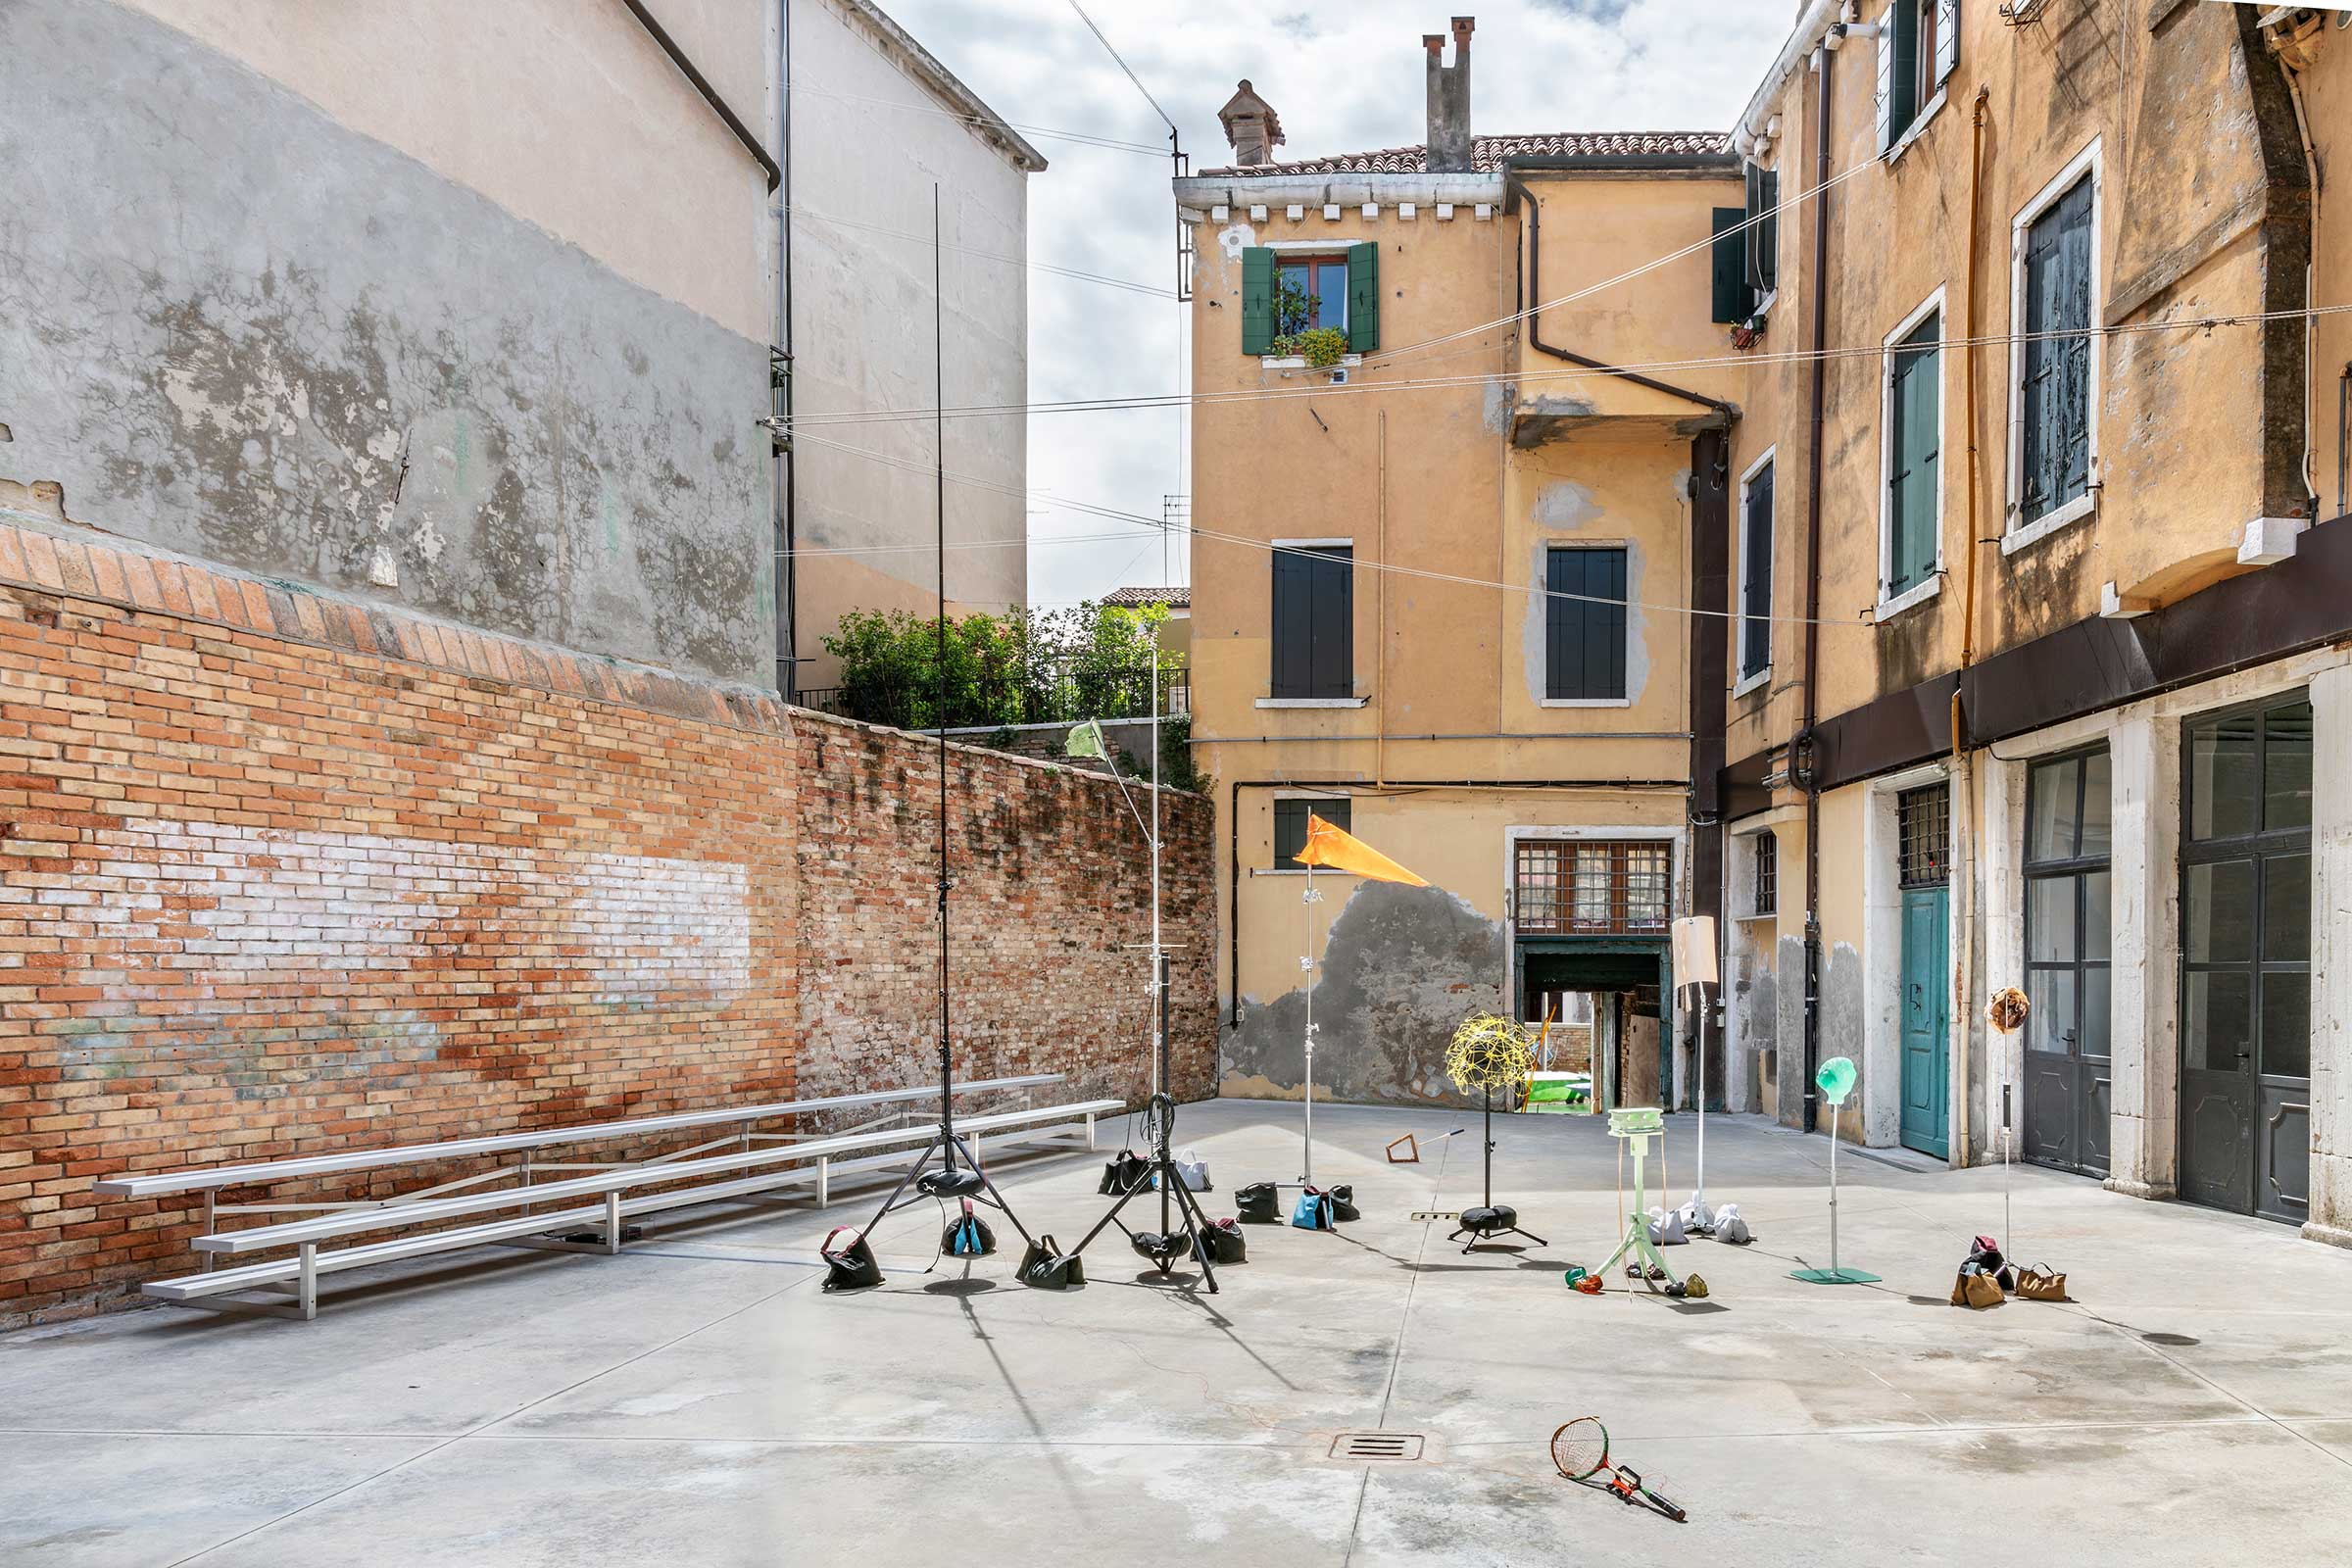 Playcourt , installation view of  Shirley Tse: Stakeholders, Hong Kong in Venice , 2019. Image by Ela Bialkowska, OKNOstudio. Courtesy of M+ and the artist